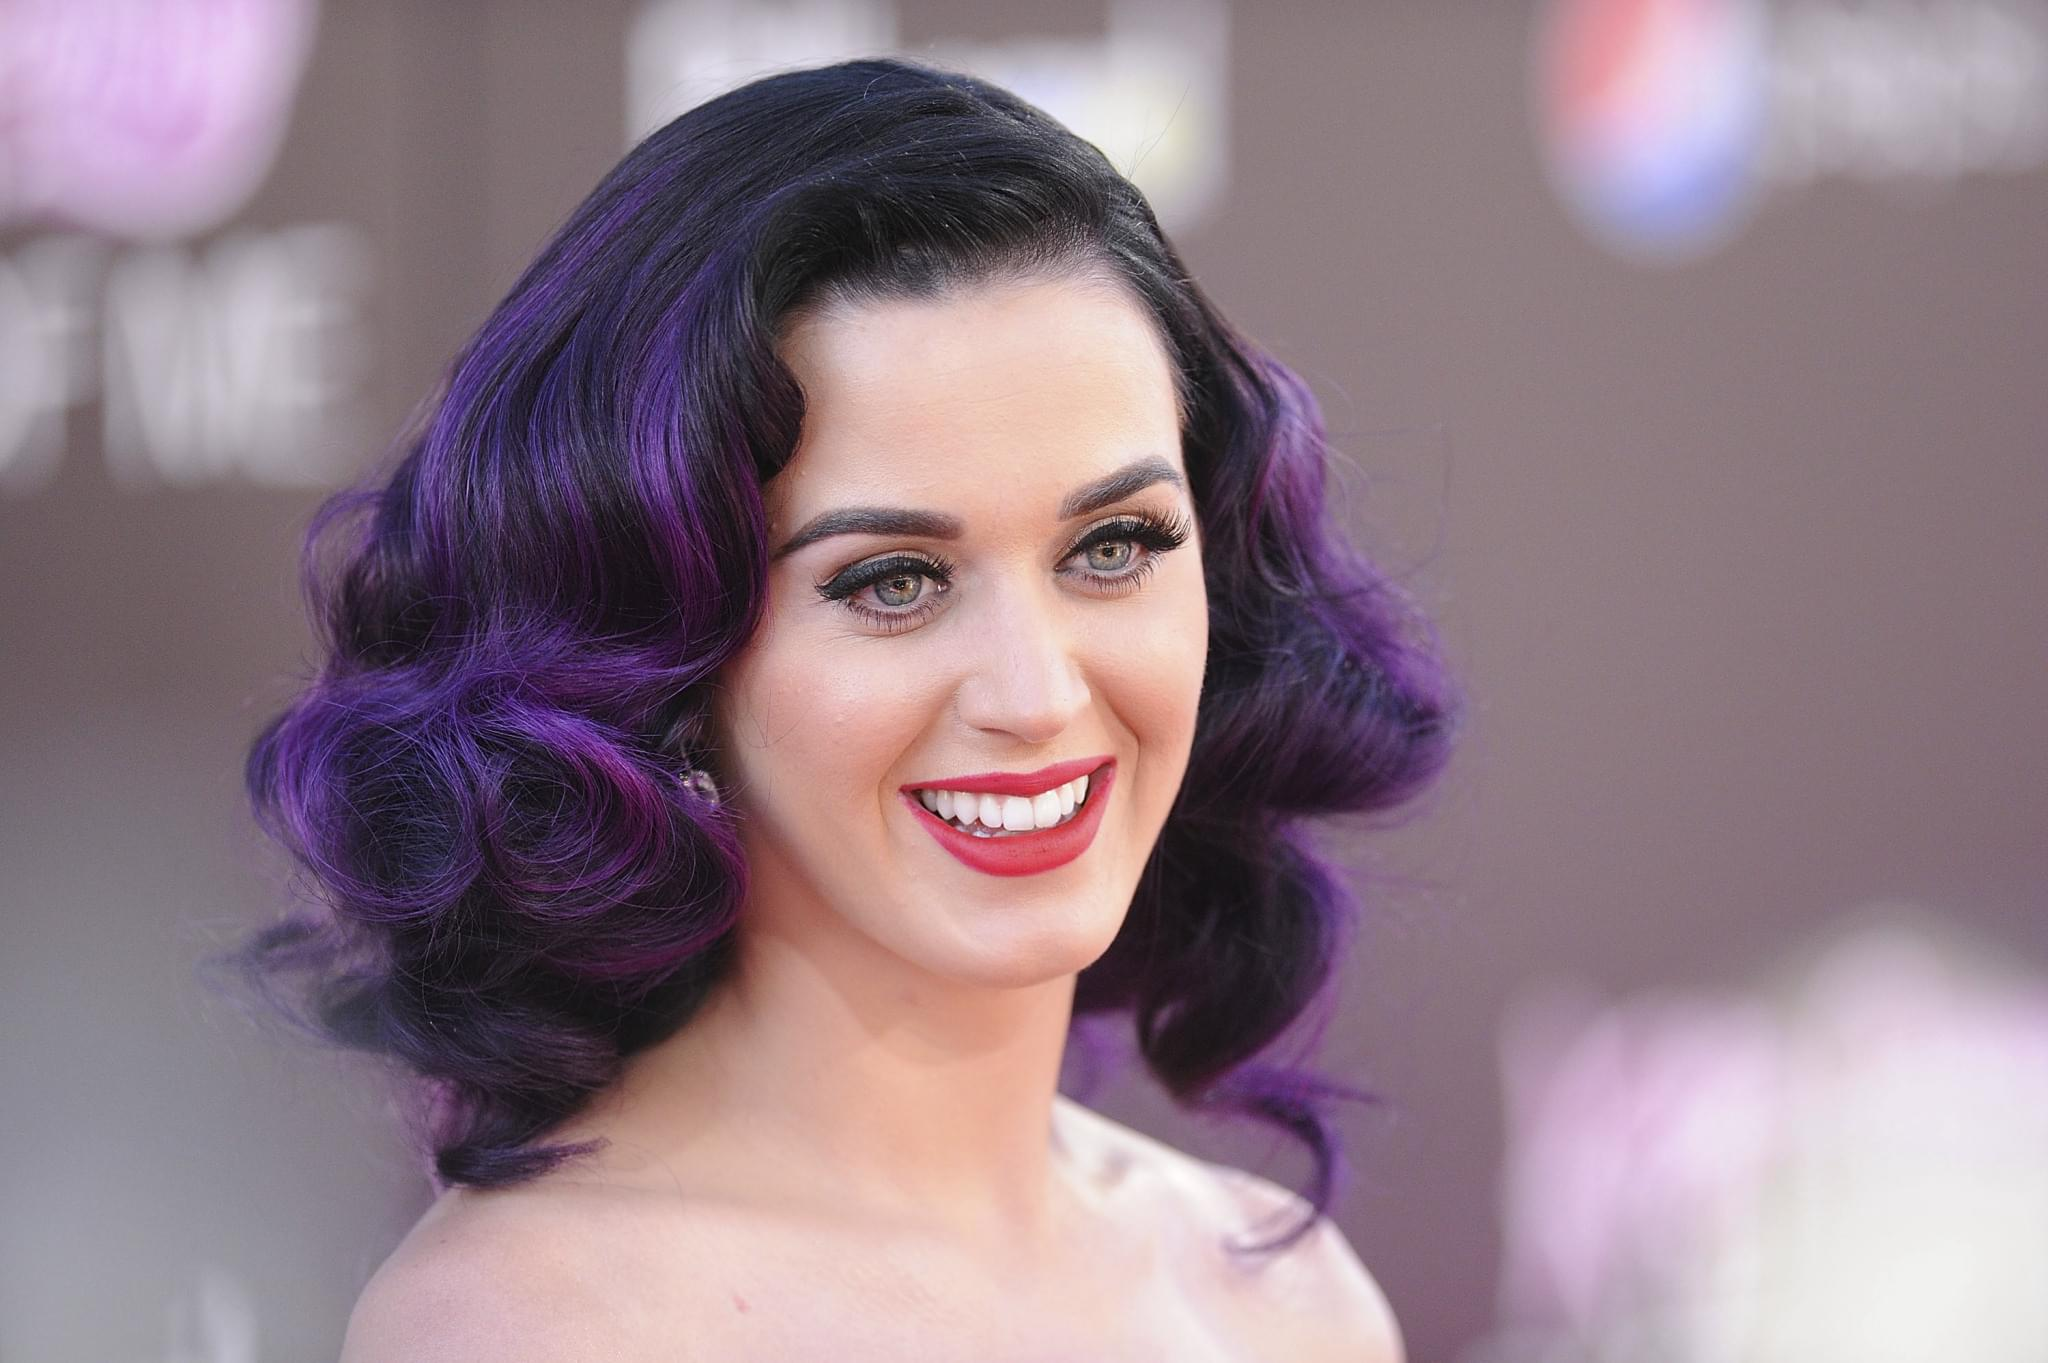 Katy Perry's Co-Star in 'Teenage Dream' Is Accusing Her of Sexual Misconduct